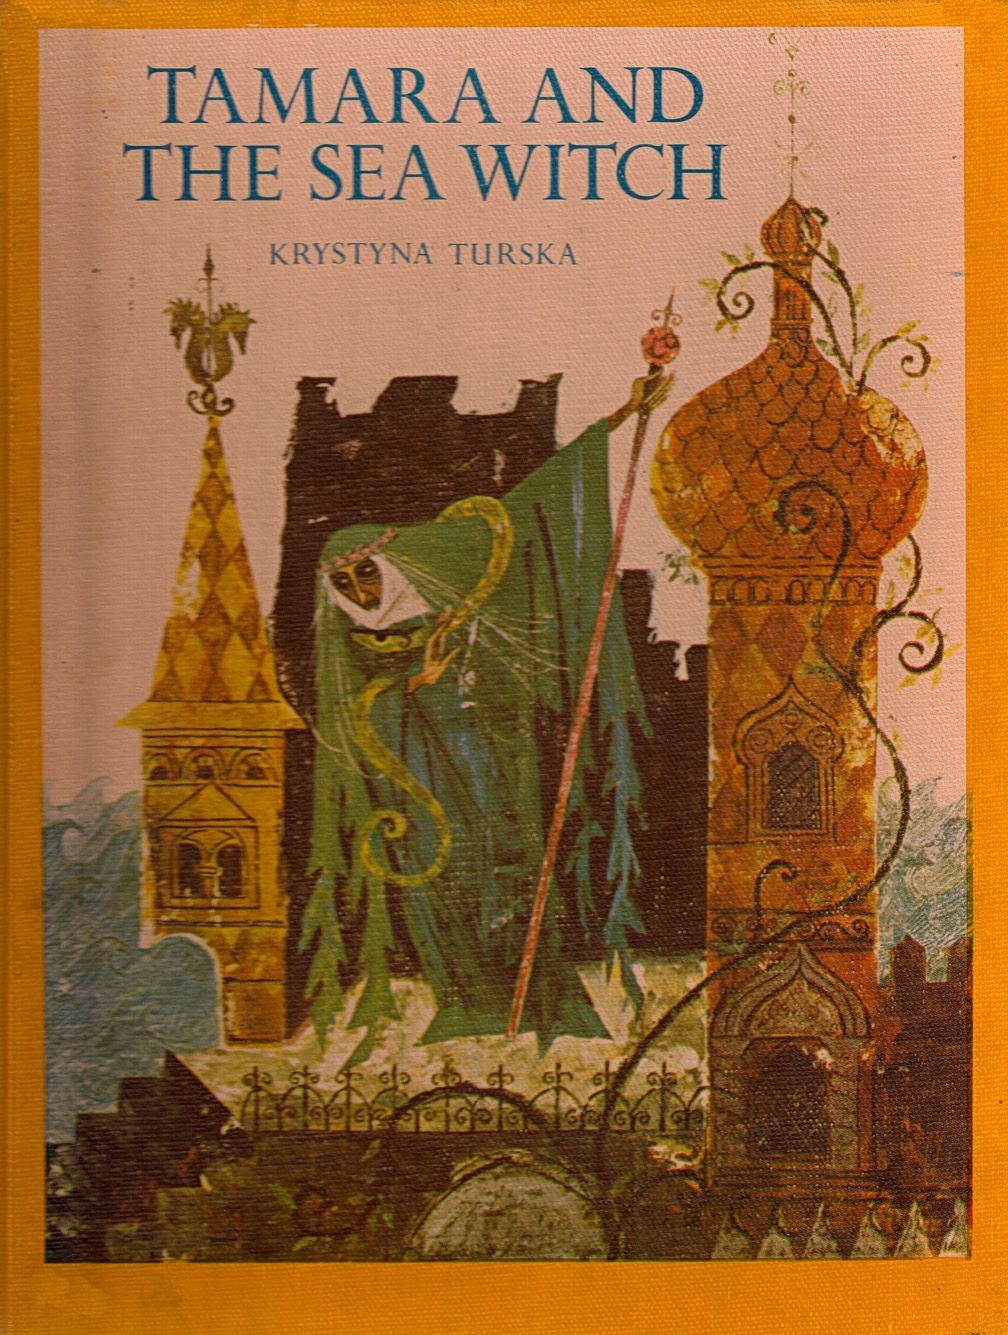 The Art of Children's Picture Books: Tamara and the Sea Witch, Krystyna Turska